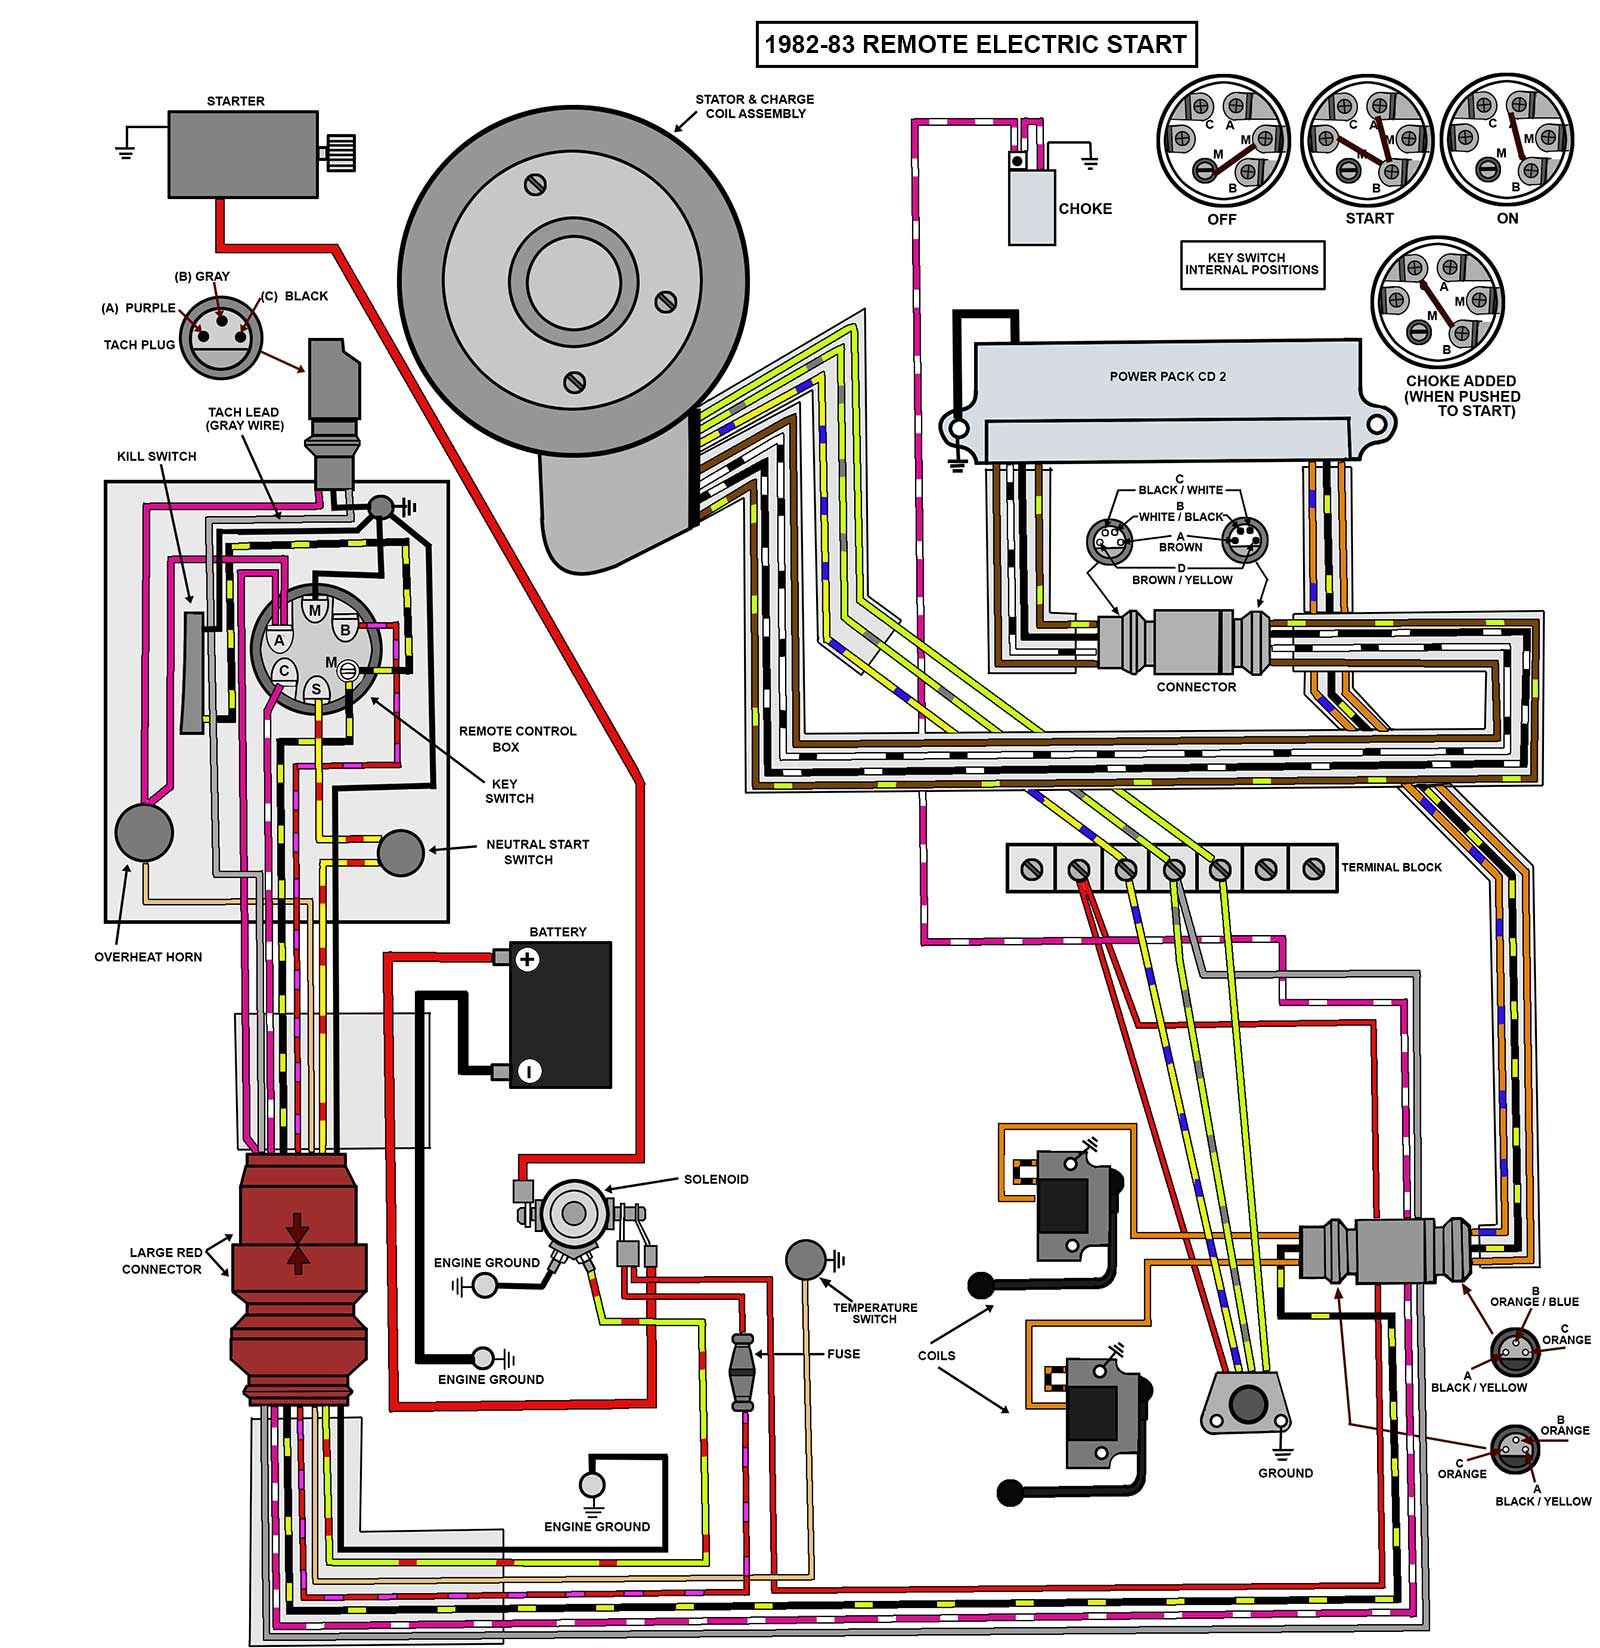 25_35_82 83_elec remote feather craft hookup diagrams wiring, steering, etc Johnson Ignition Switch Wiring Diagram at reclaimingppi.co